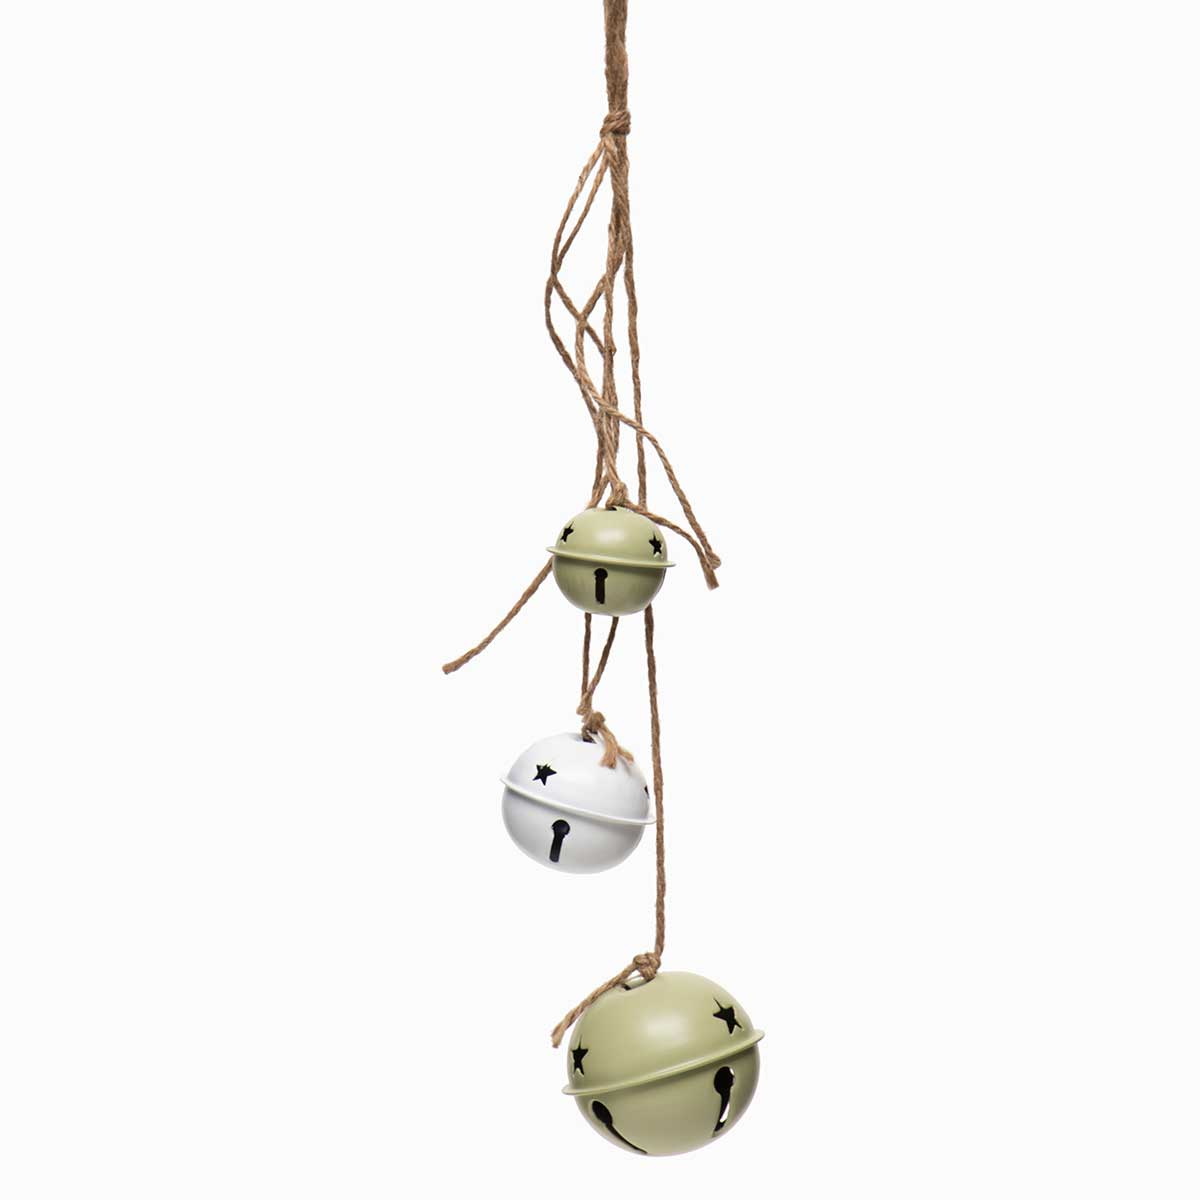 GREEN/WHITE JINGLE BELL WITH STAR